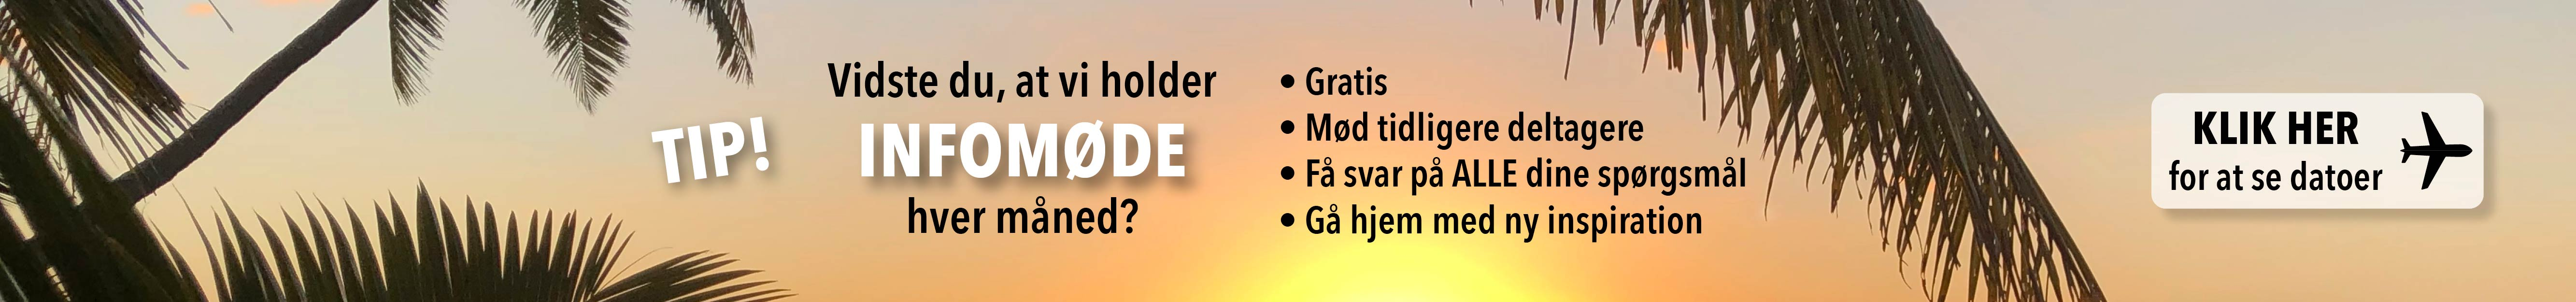 Viste du at vi holder infomøder hver måned?